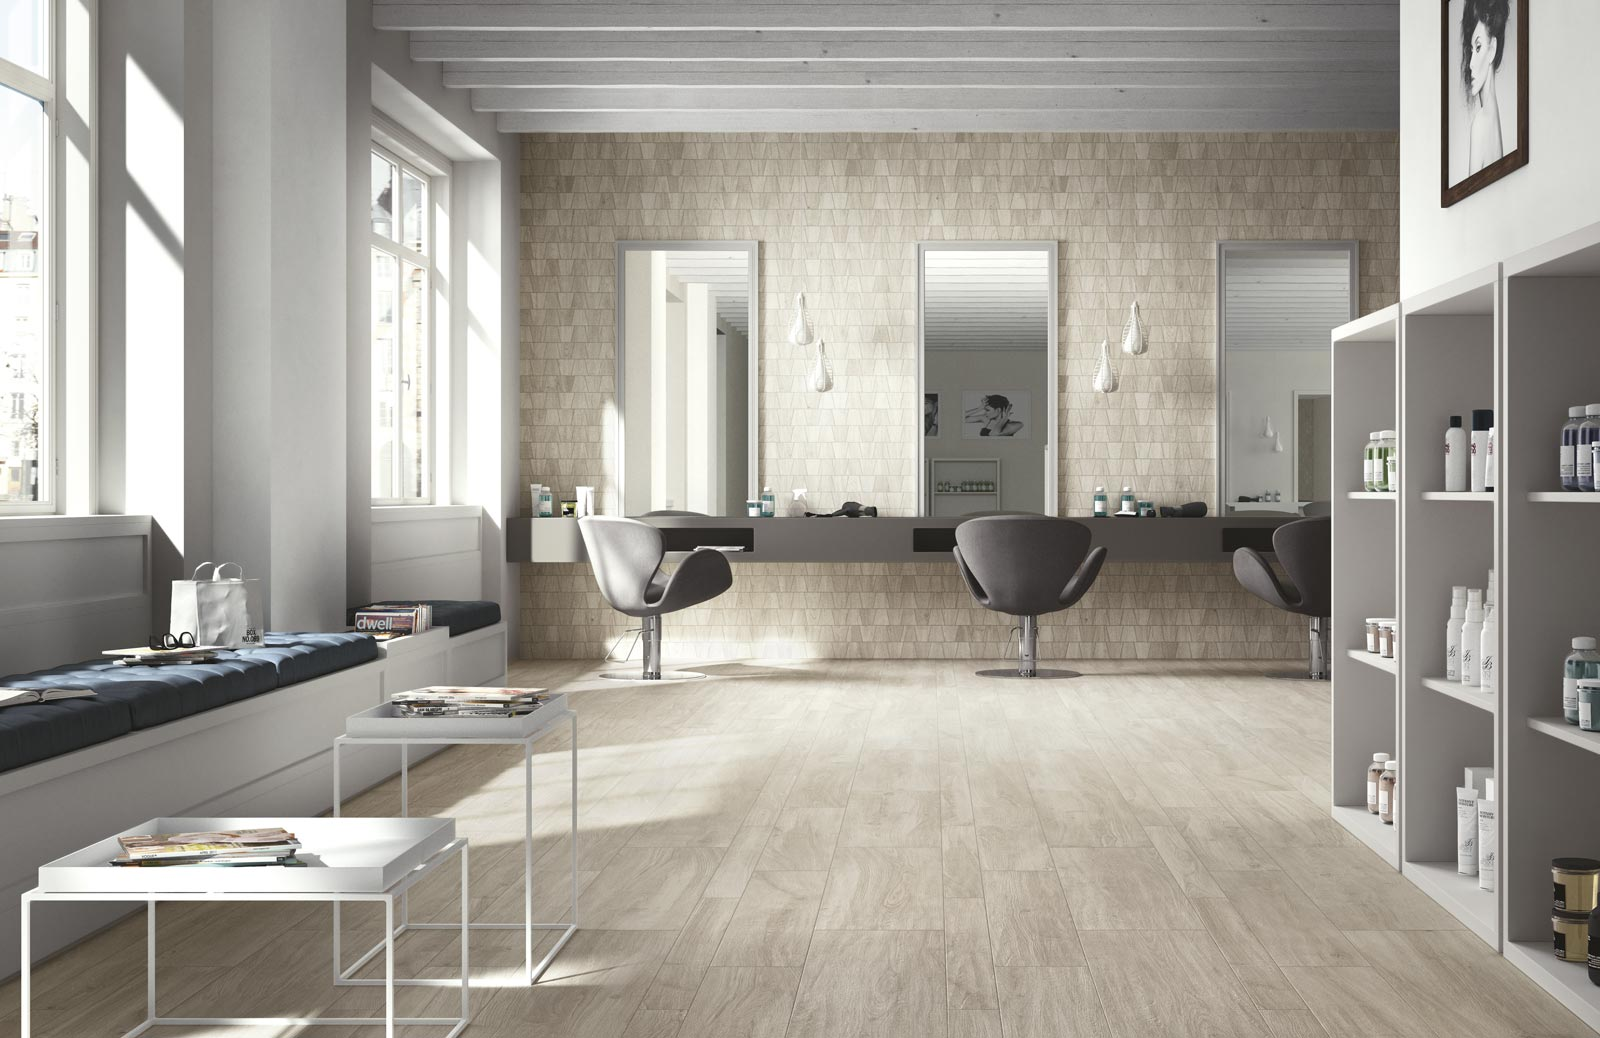 Collezione woodliving rivestimenti in gres effetto legno ragno - Rivestimenti bagno ragno ...